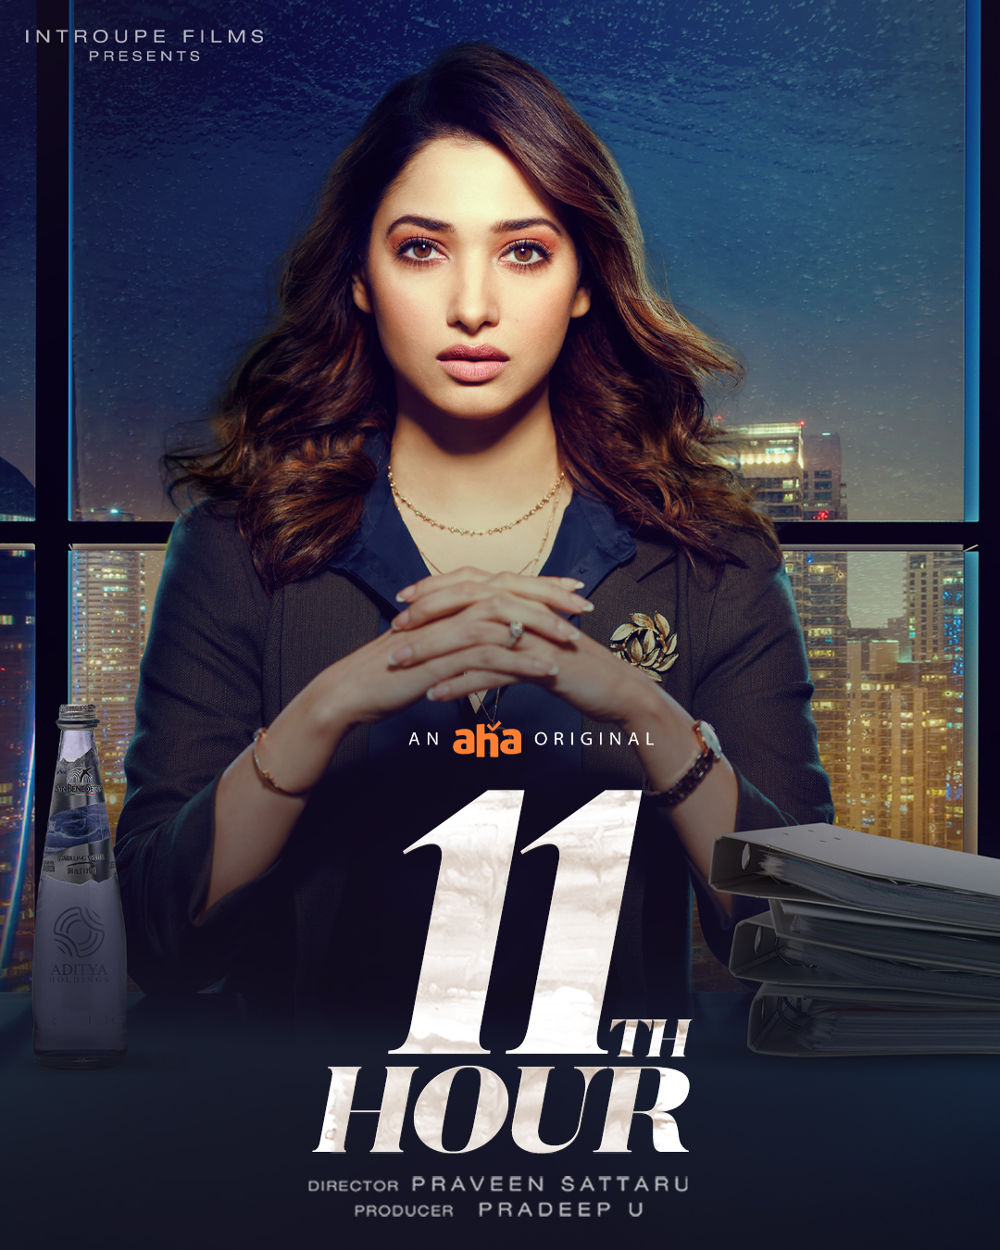 Actress Tamannaah 11th Hour Release on April 9th